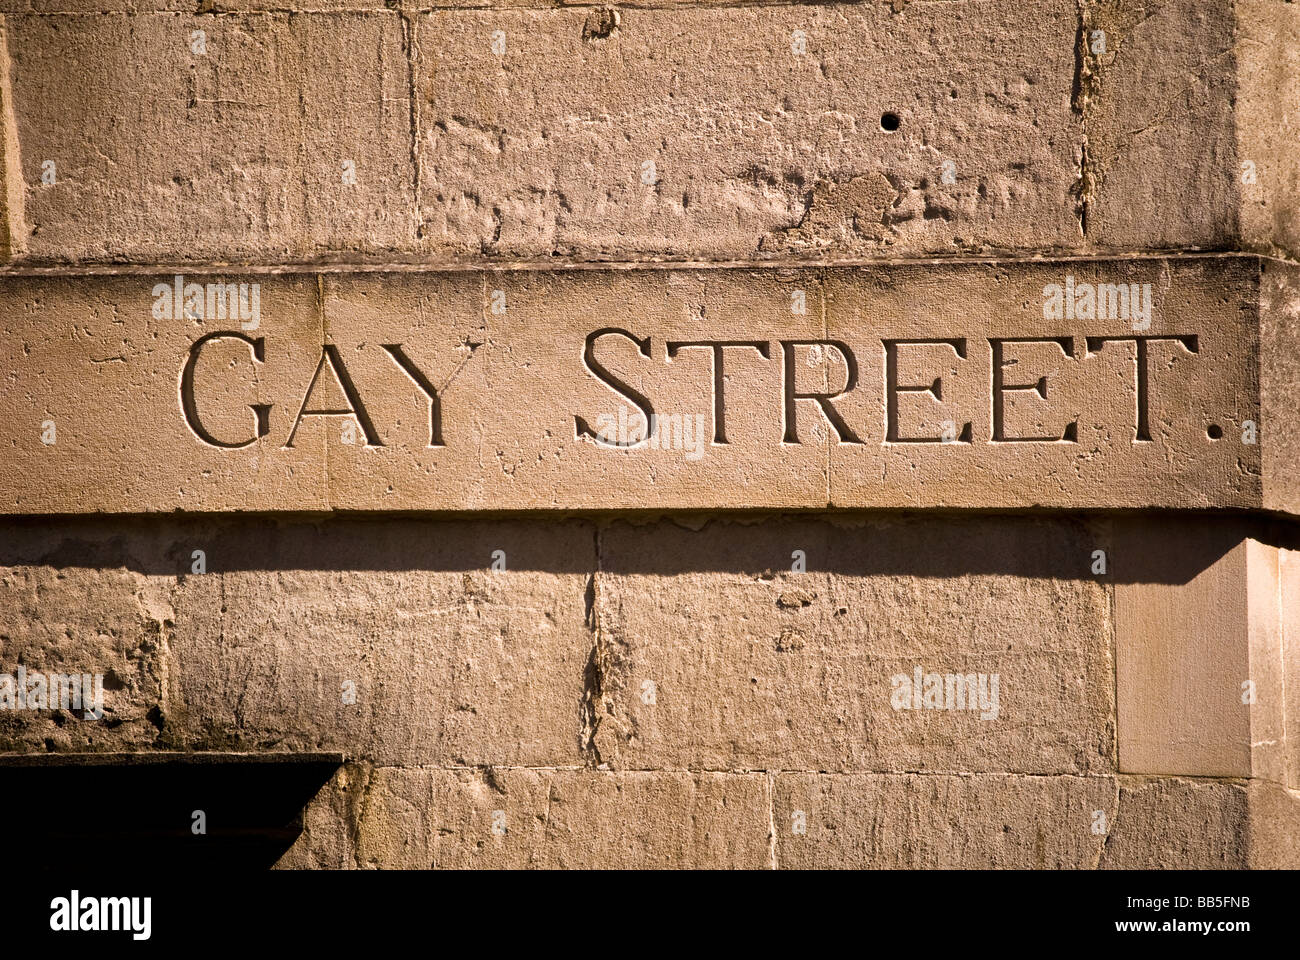 The name 'Gay Street' in Bath carved in stone. - Stock Image